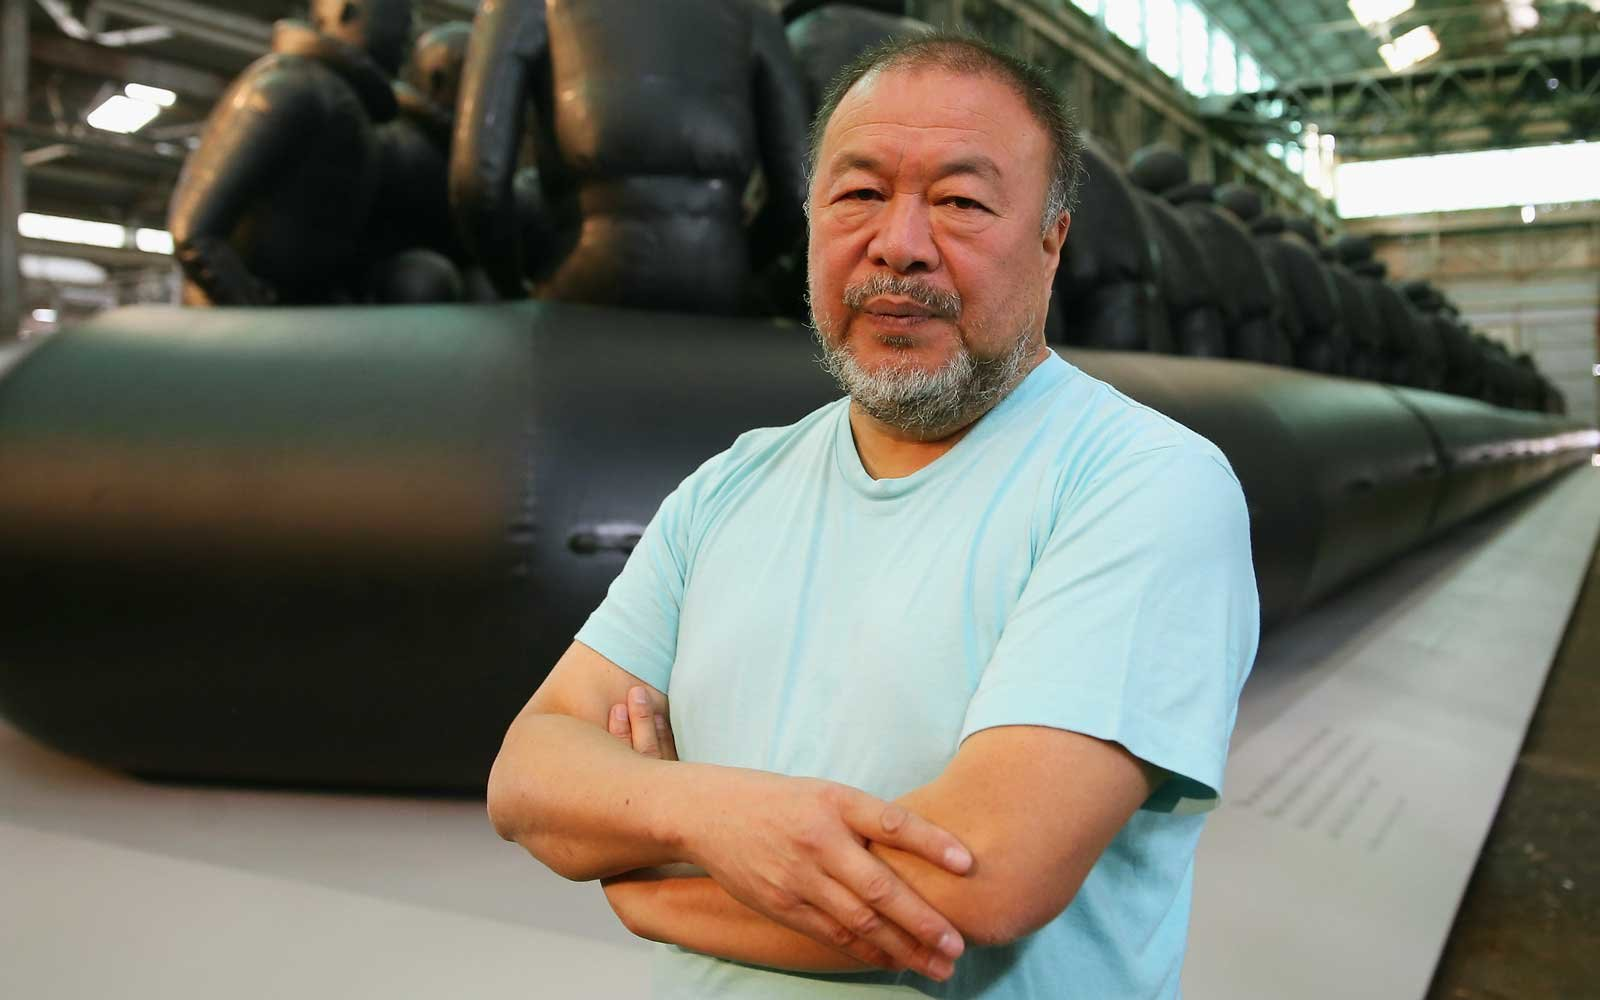 Ai Weiwei poses in front of his work 'Law of the Journey' on March 12, 2018 in Sydney, Australia